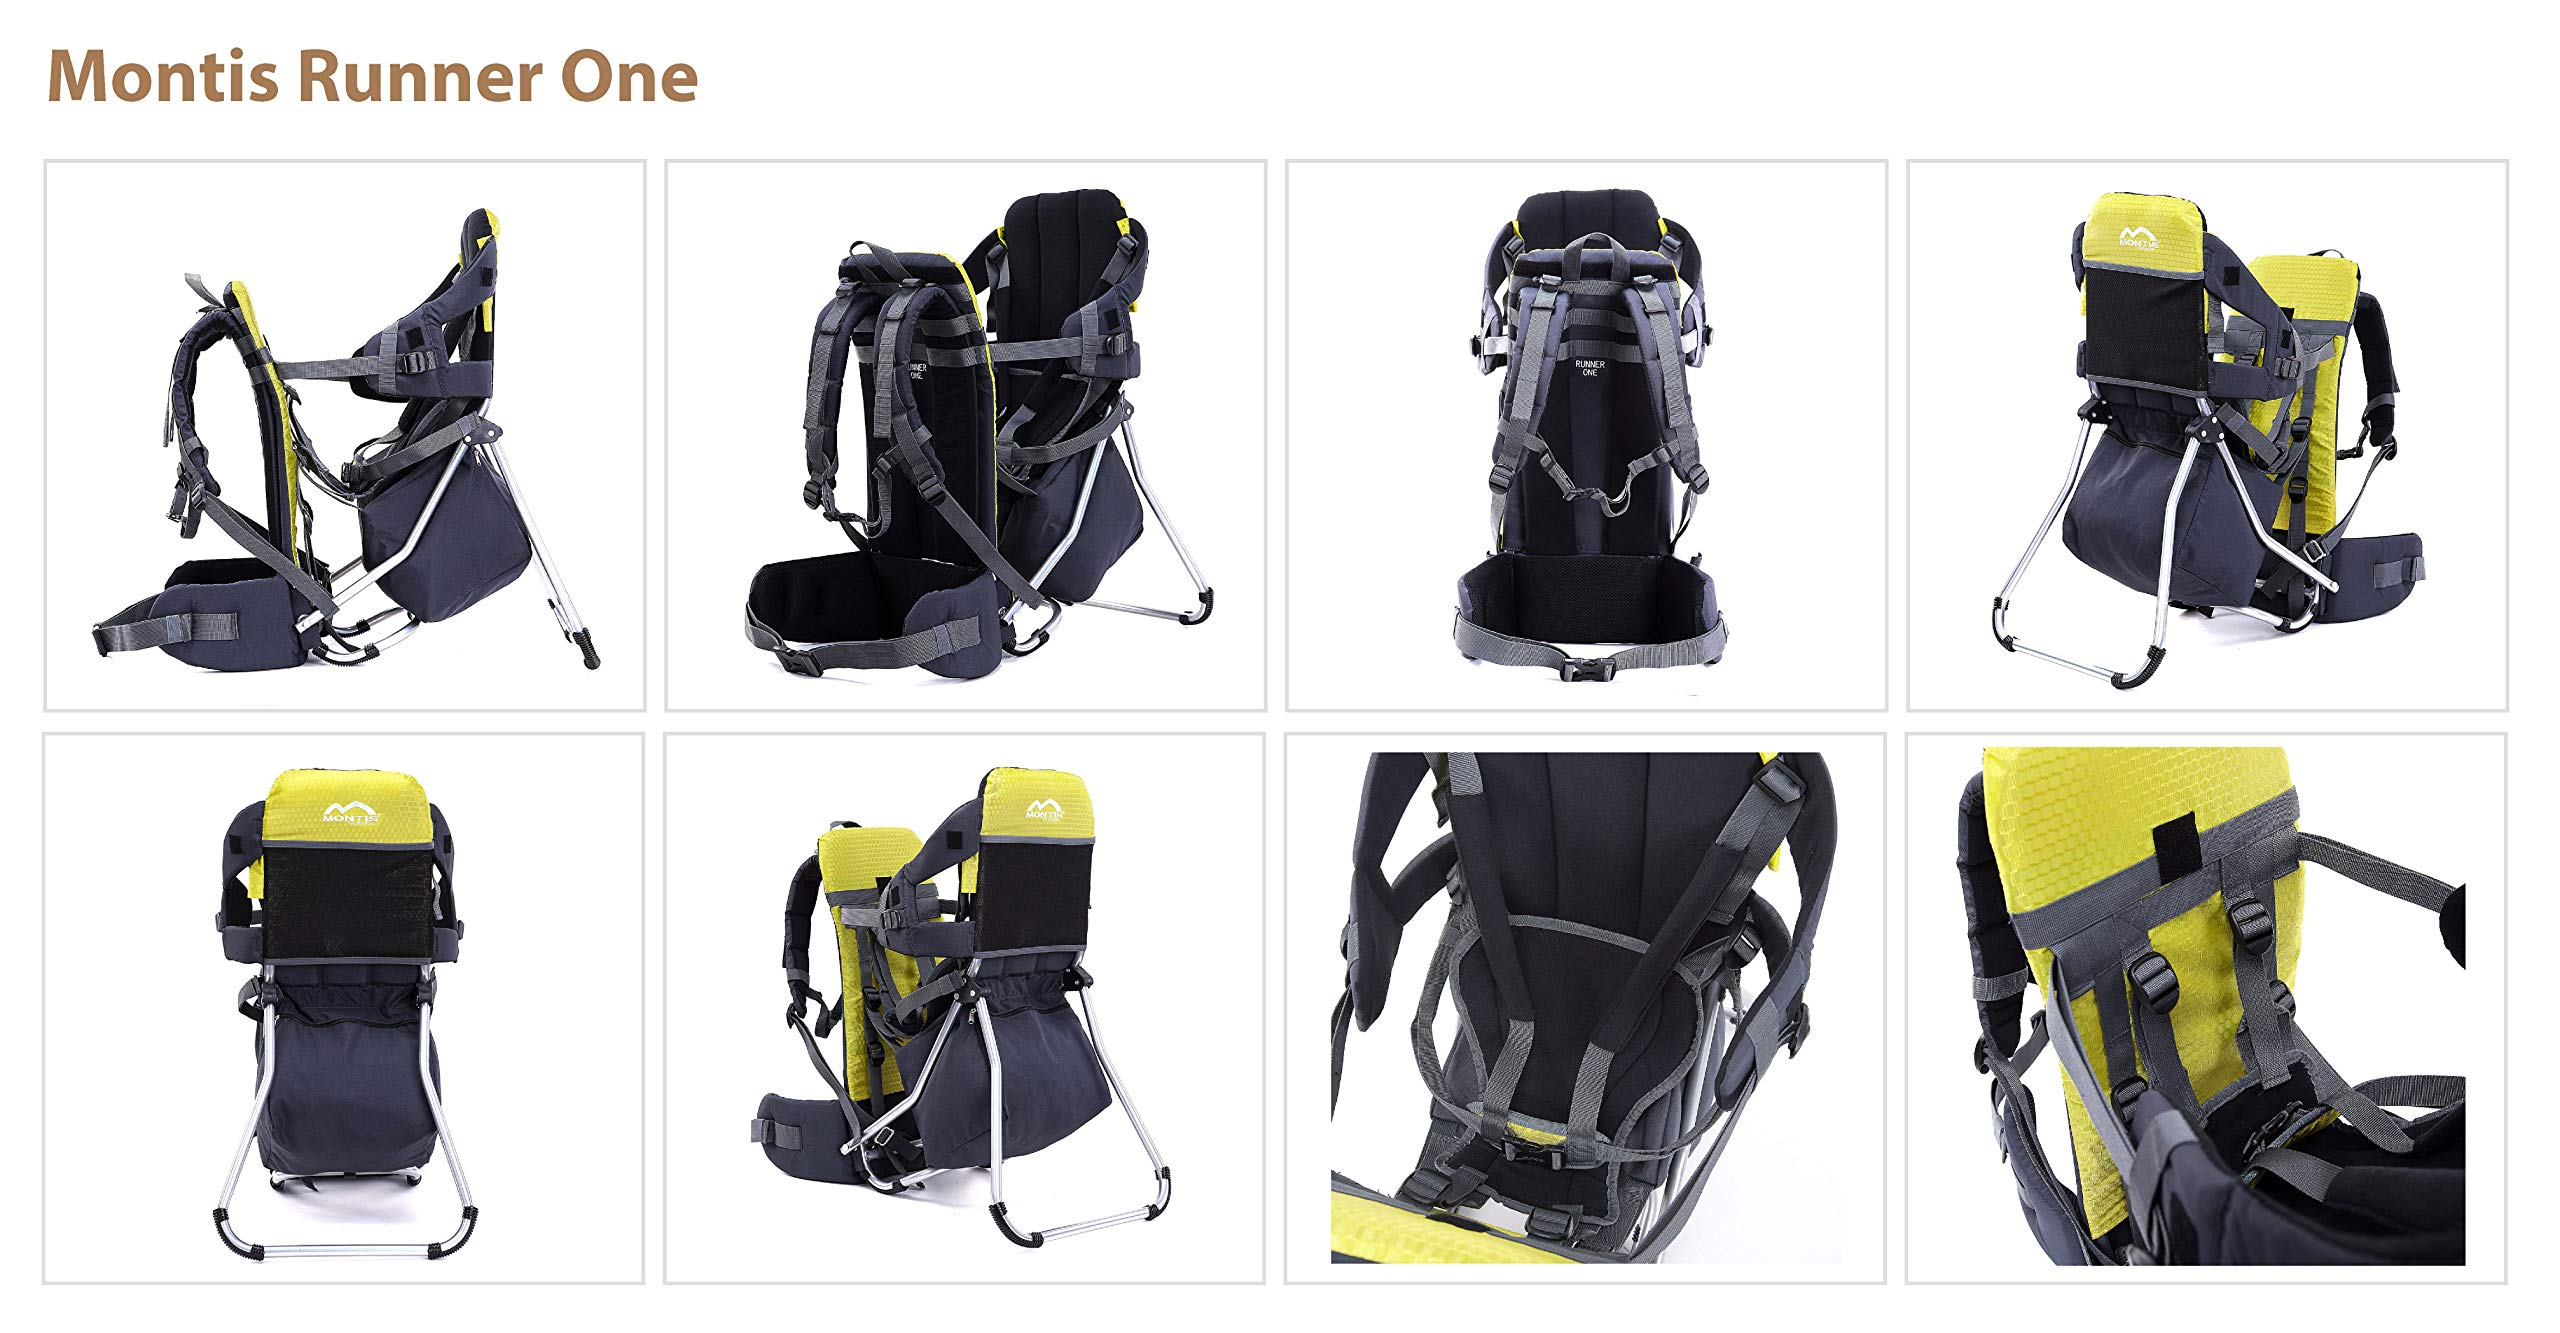 MONTIS RUNNER ONE Holds up to 25kg Backpack//Child Carrier